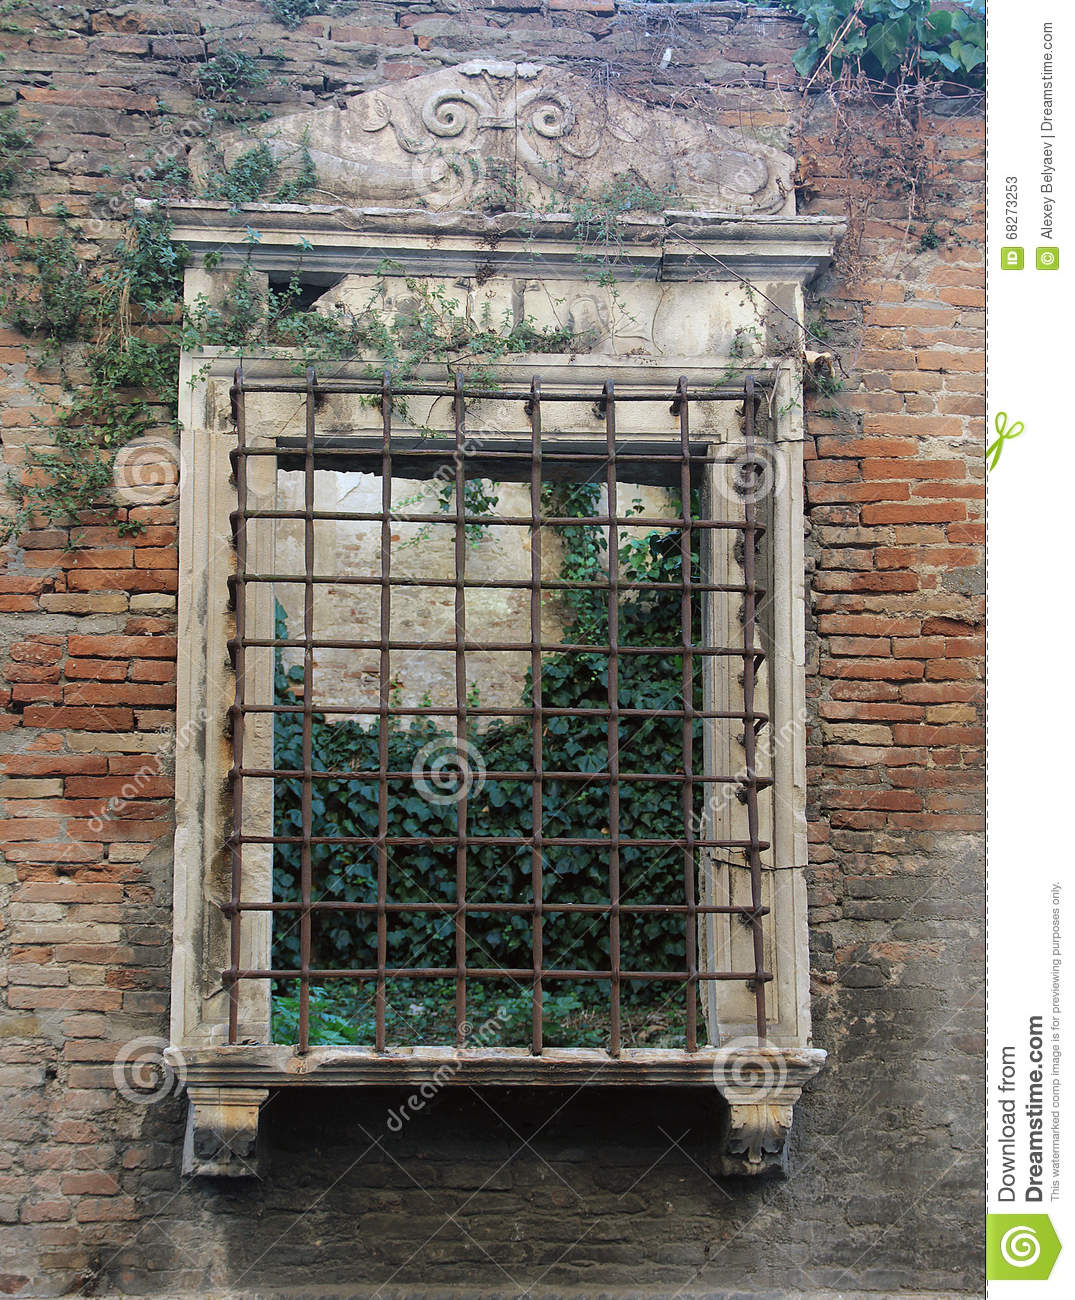 Historic window opening with bars in ancient roman house stock photo image - Decoration romaine antique ...